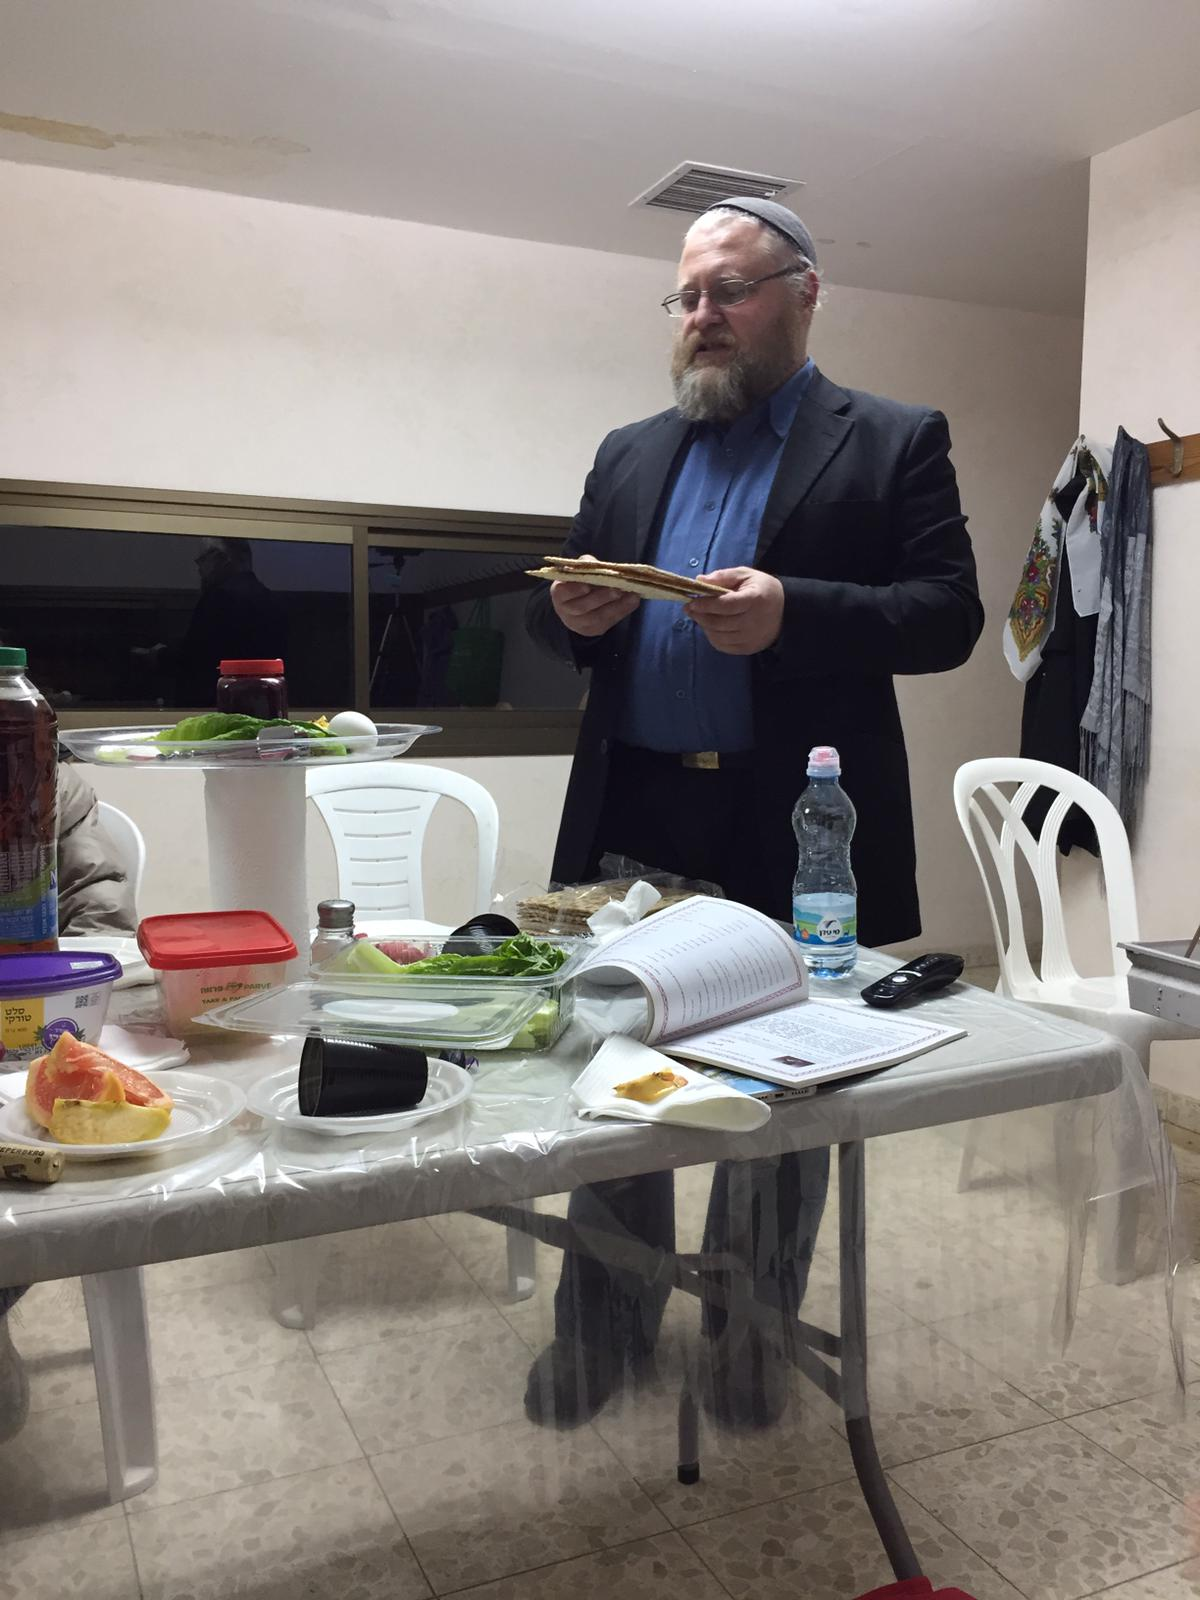 Cuisine Zelig Shavei Israel Shavei Israel Communities Get Ready For The Pesach